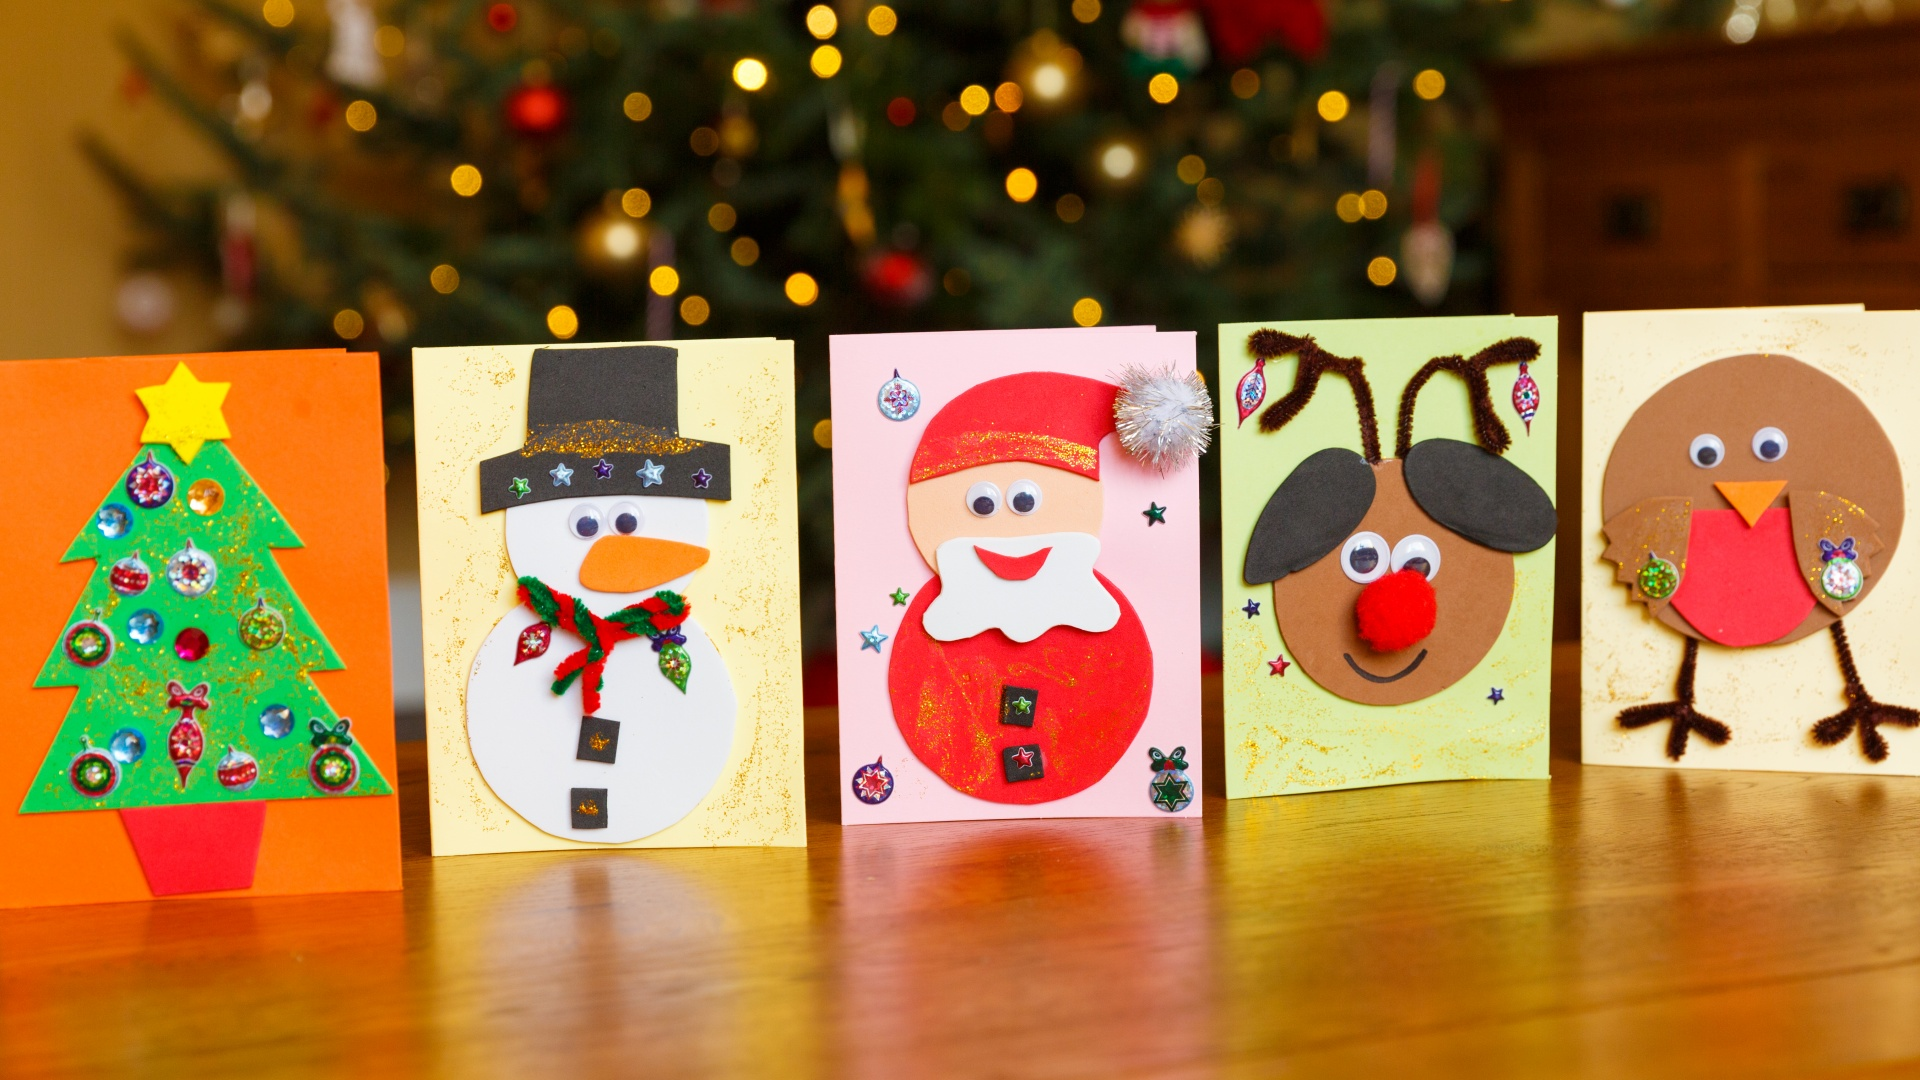 assorted-christmas-cards-1448895398jeQ.jpg